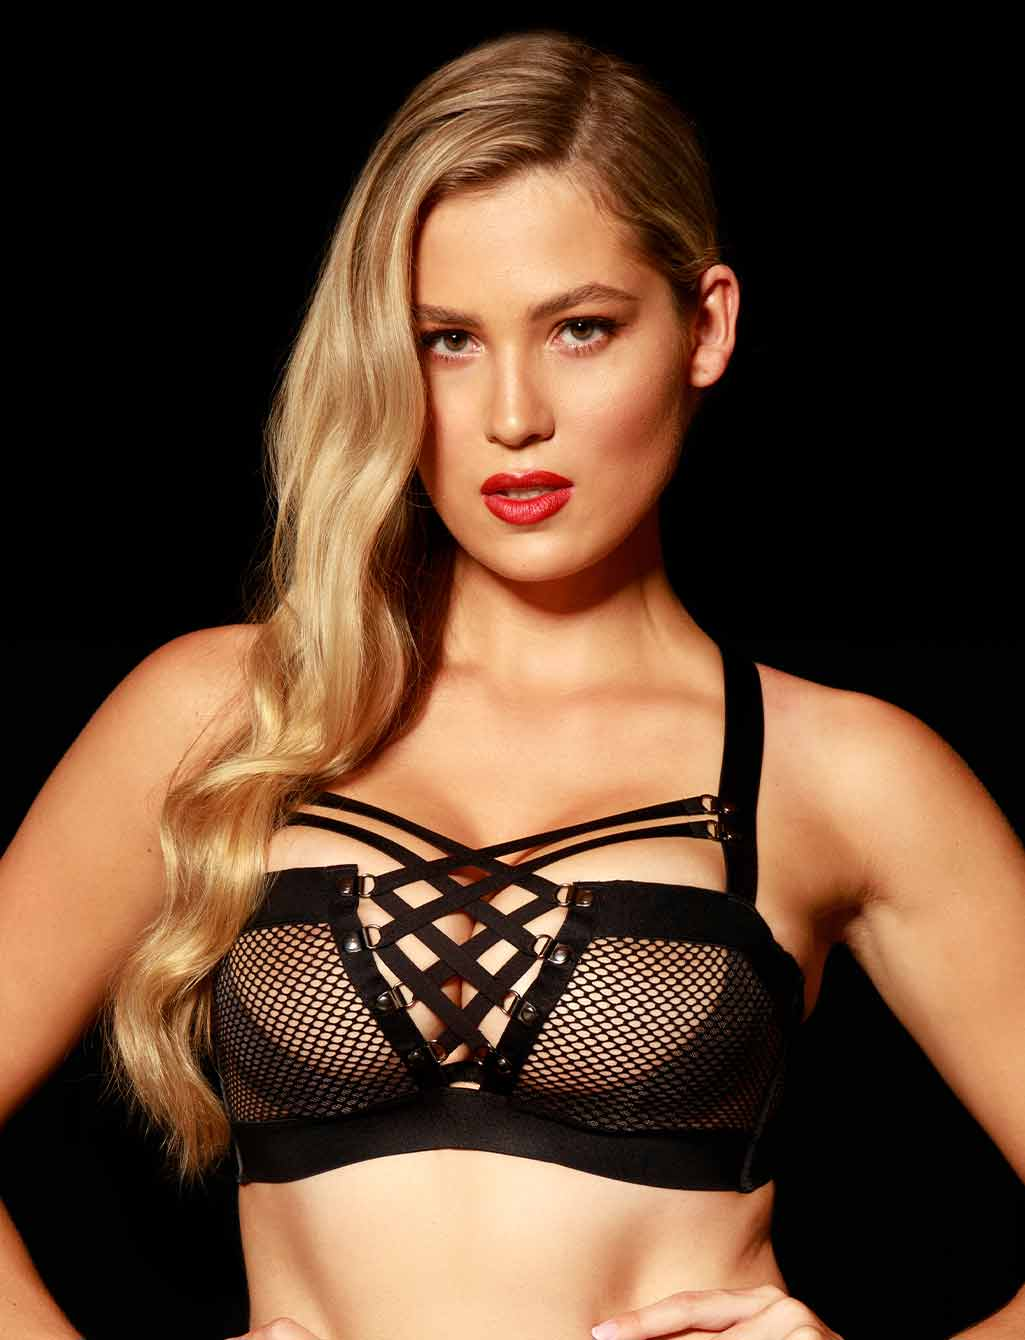 Courtney Lingerie Set | Shop  Lingerie Honey Birdette